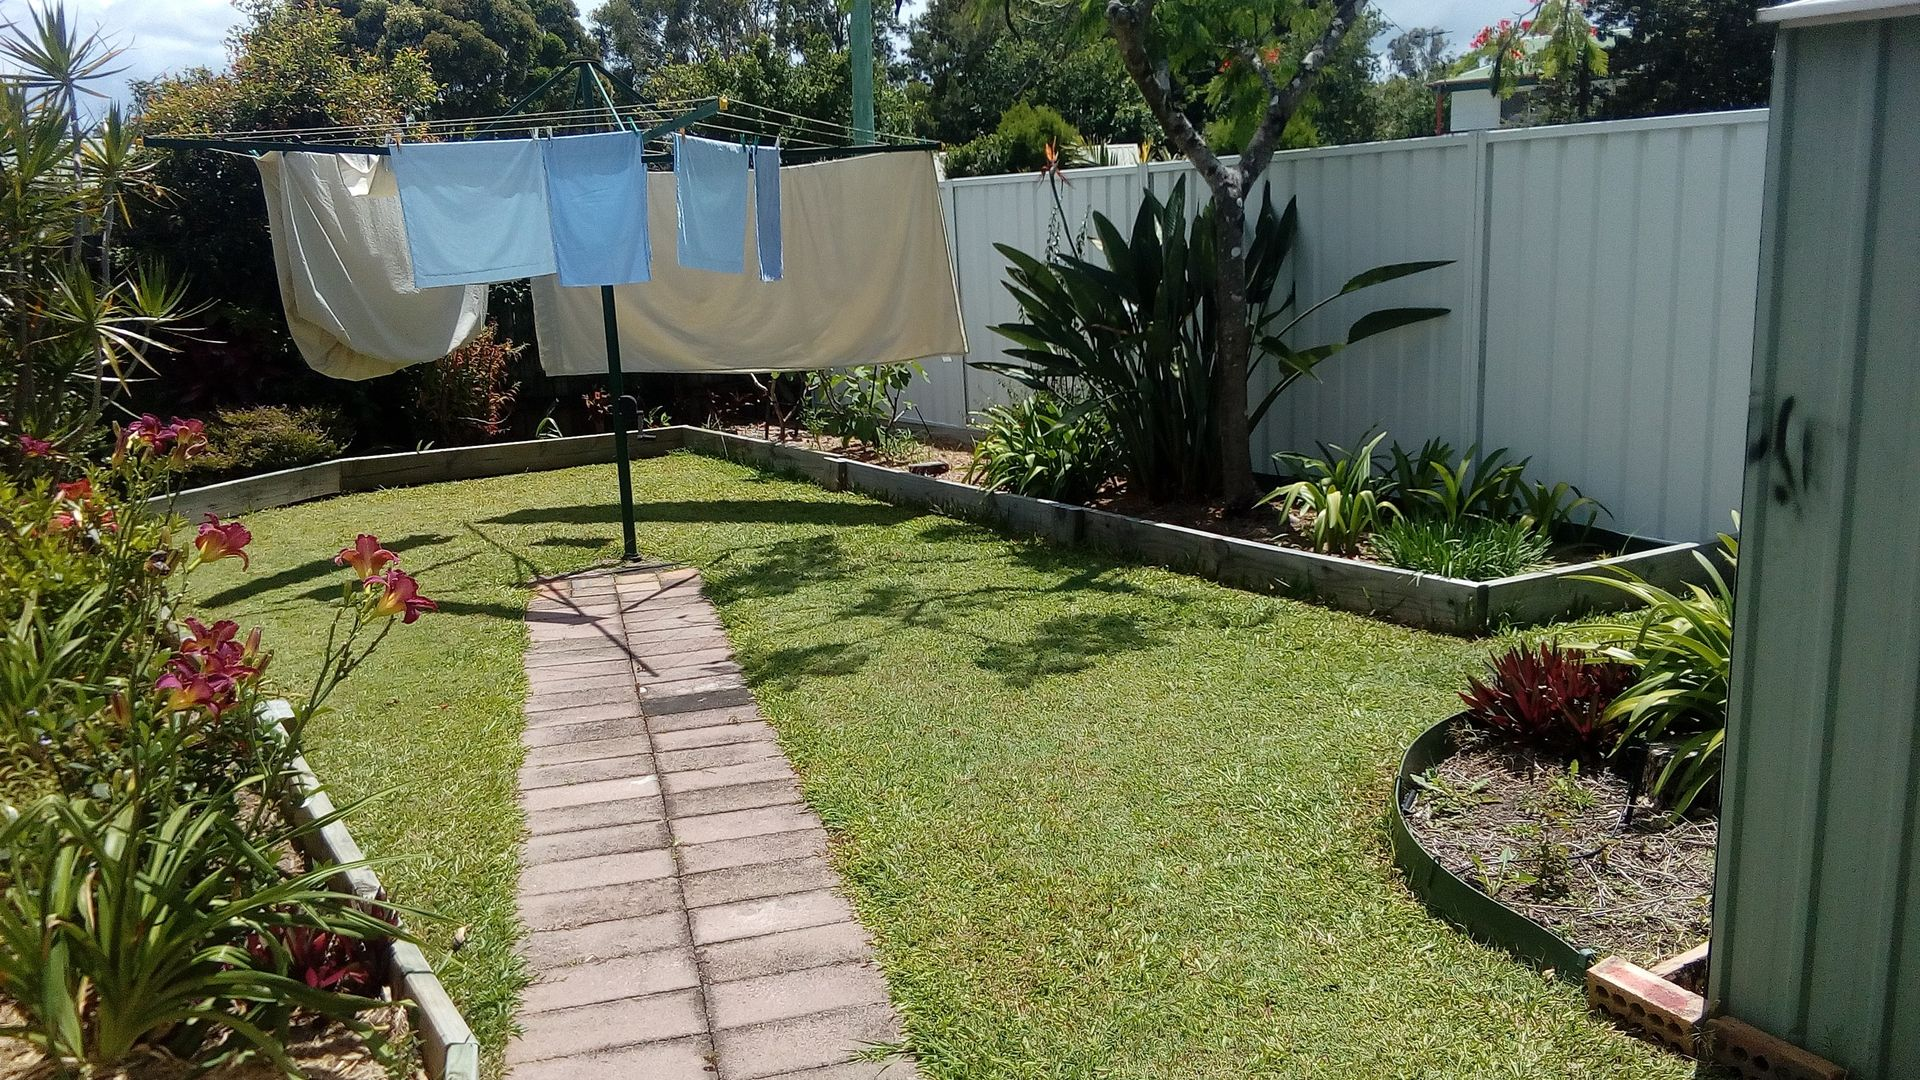 8-10 Winterbrook Court, Caboolture QLD 4510, Image 1